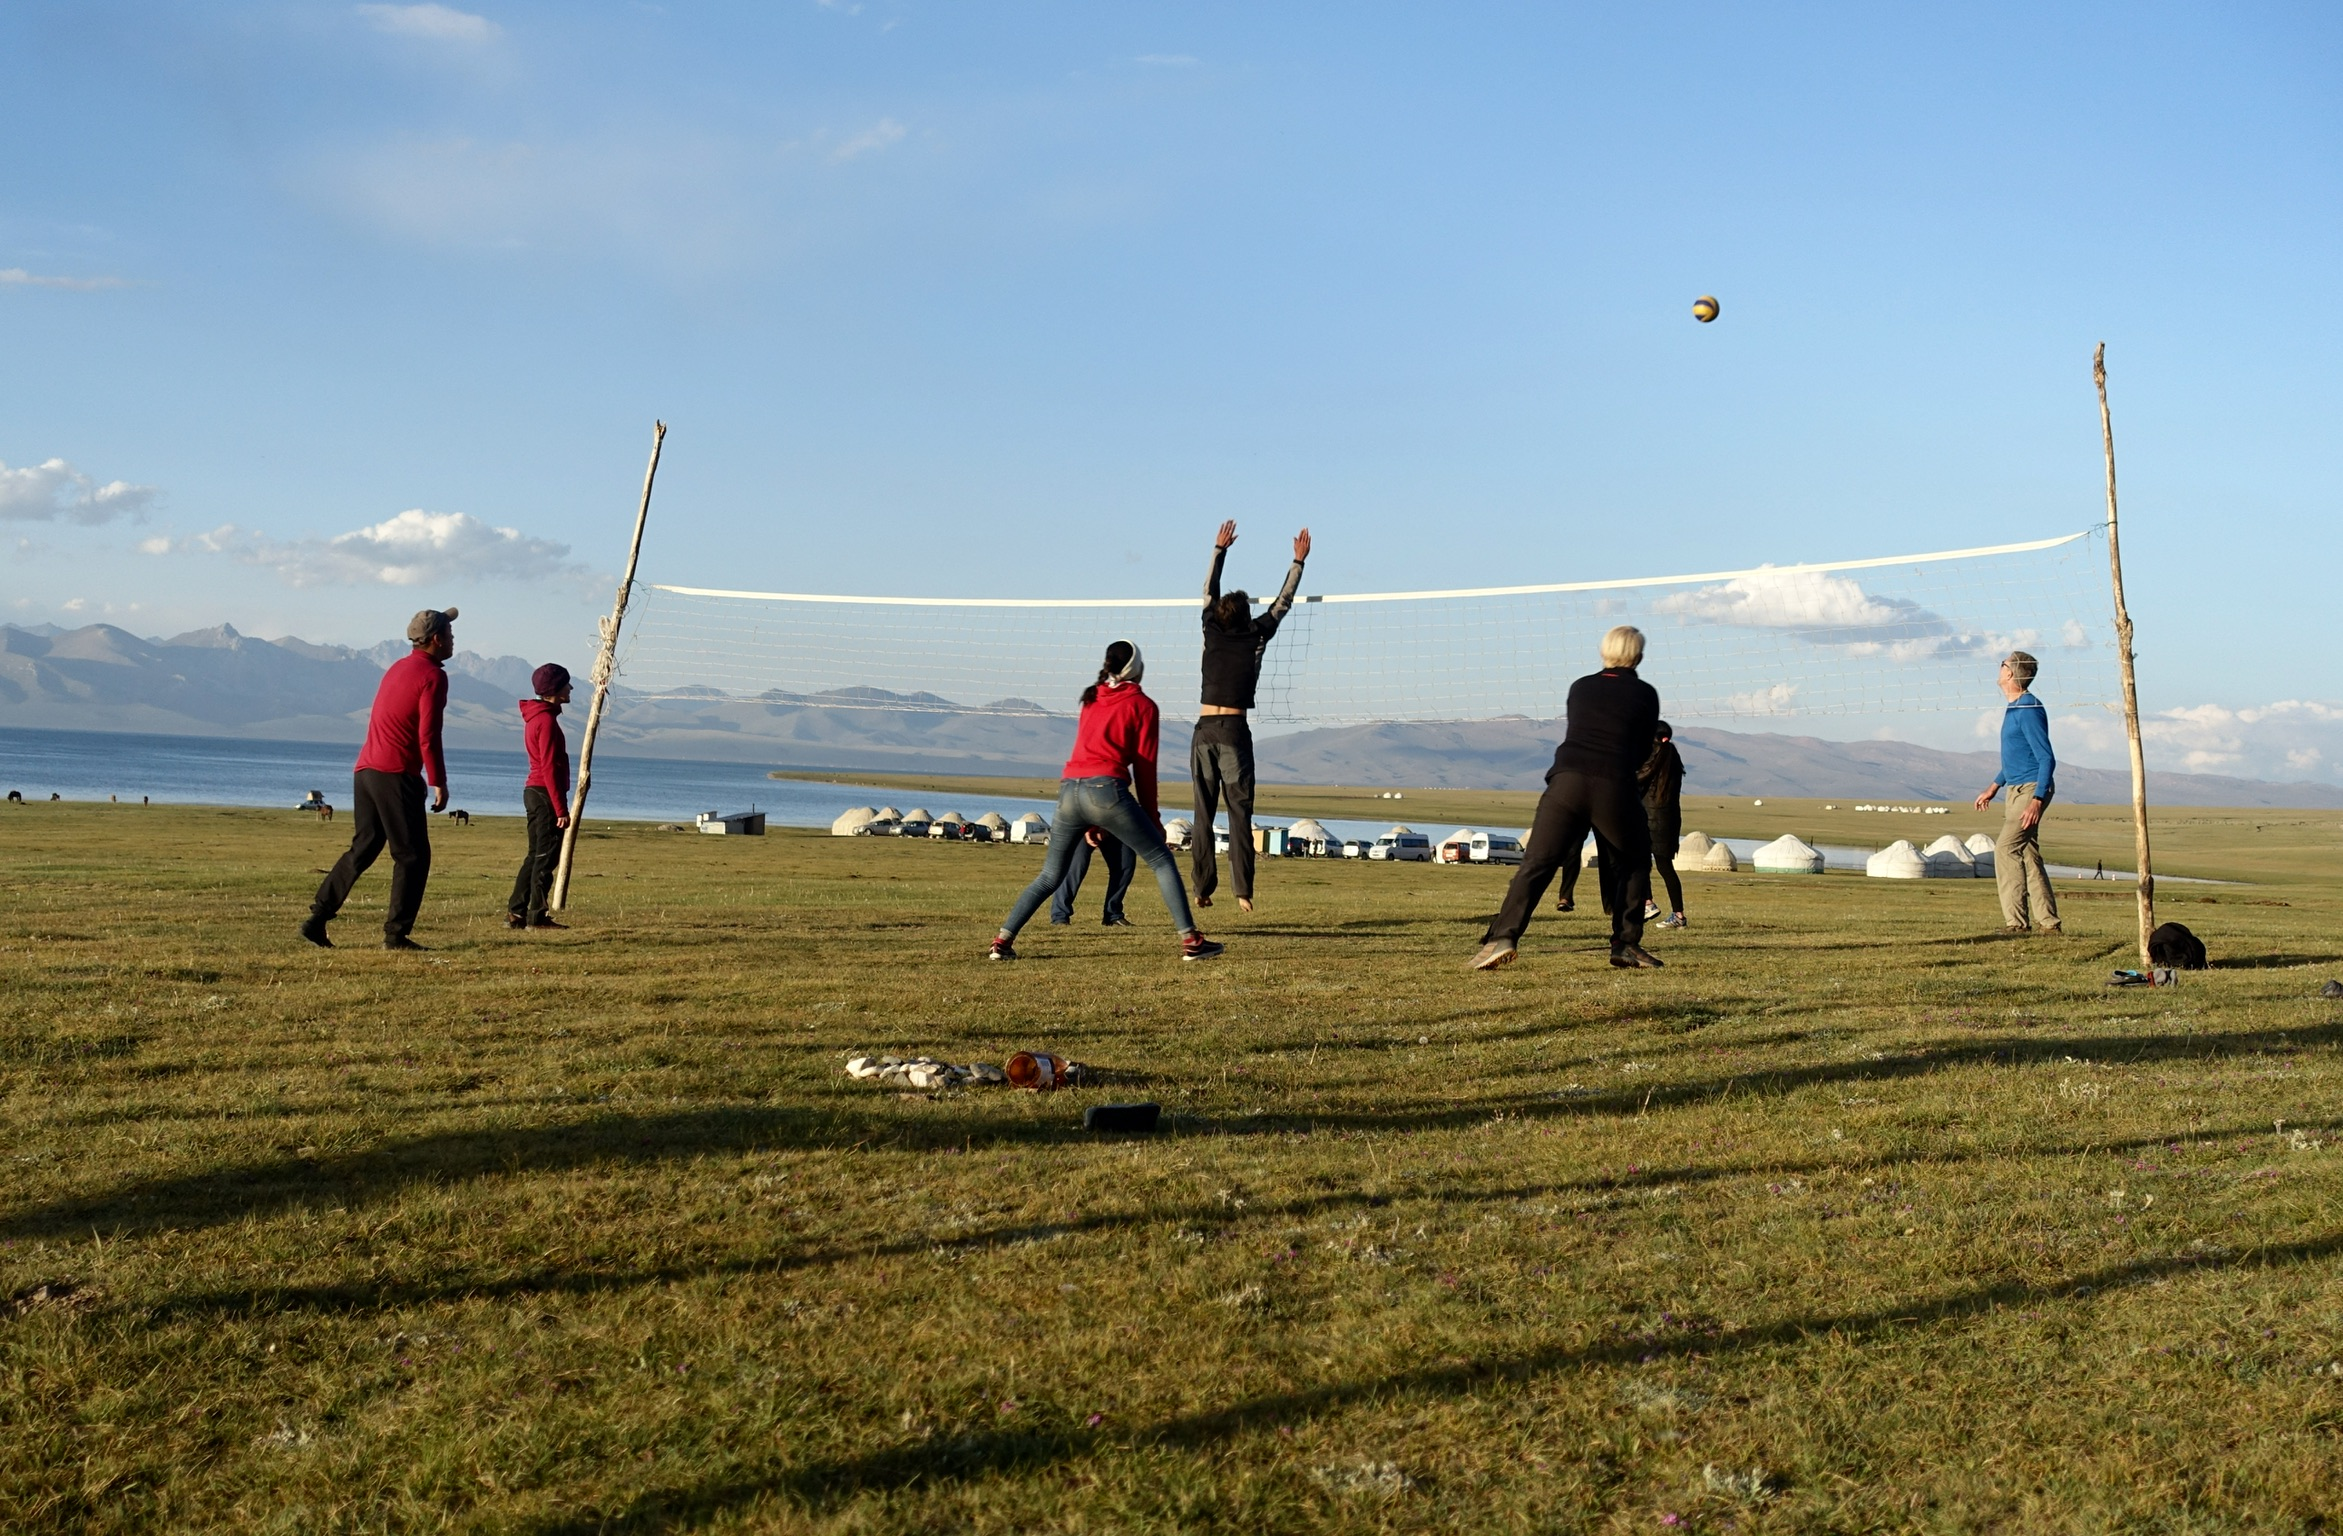 Volleyball game at Song Kul Lake